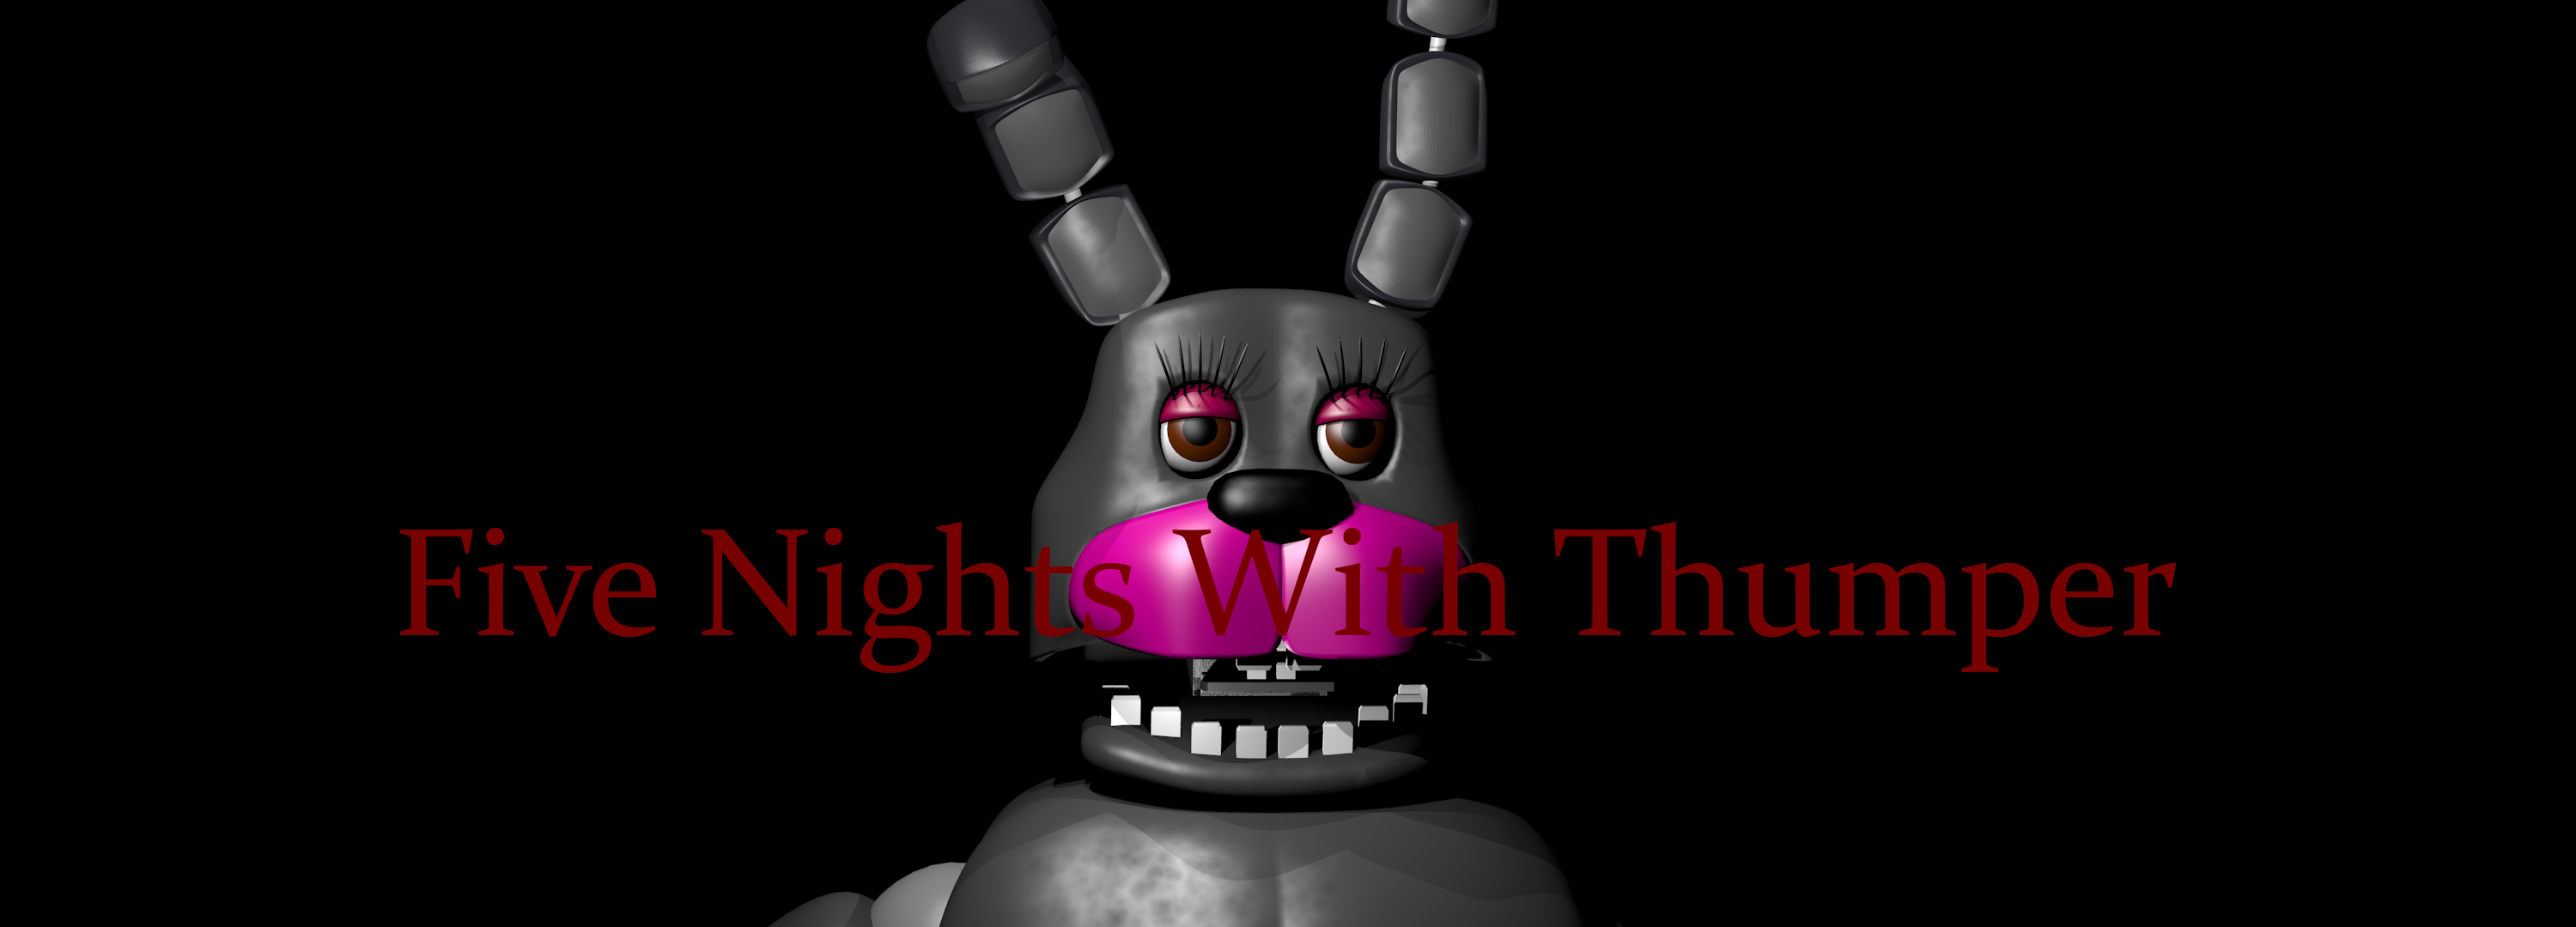 Horror multiplayer retro survival fangame fnaf view all - This Is A Five Nights At Freddy S Fan Game Credit To Scott Cawthon For Creating The Franchise